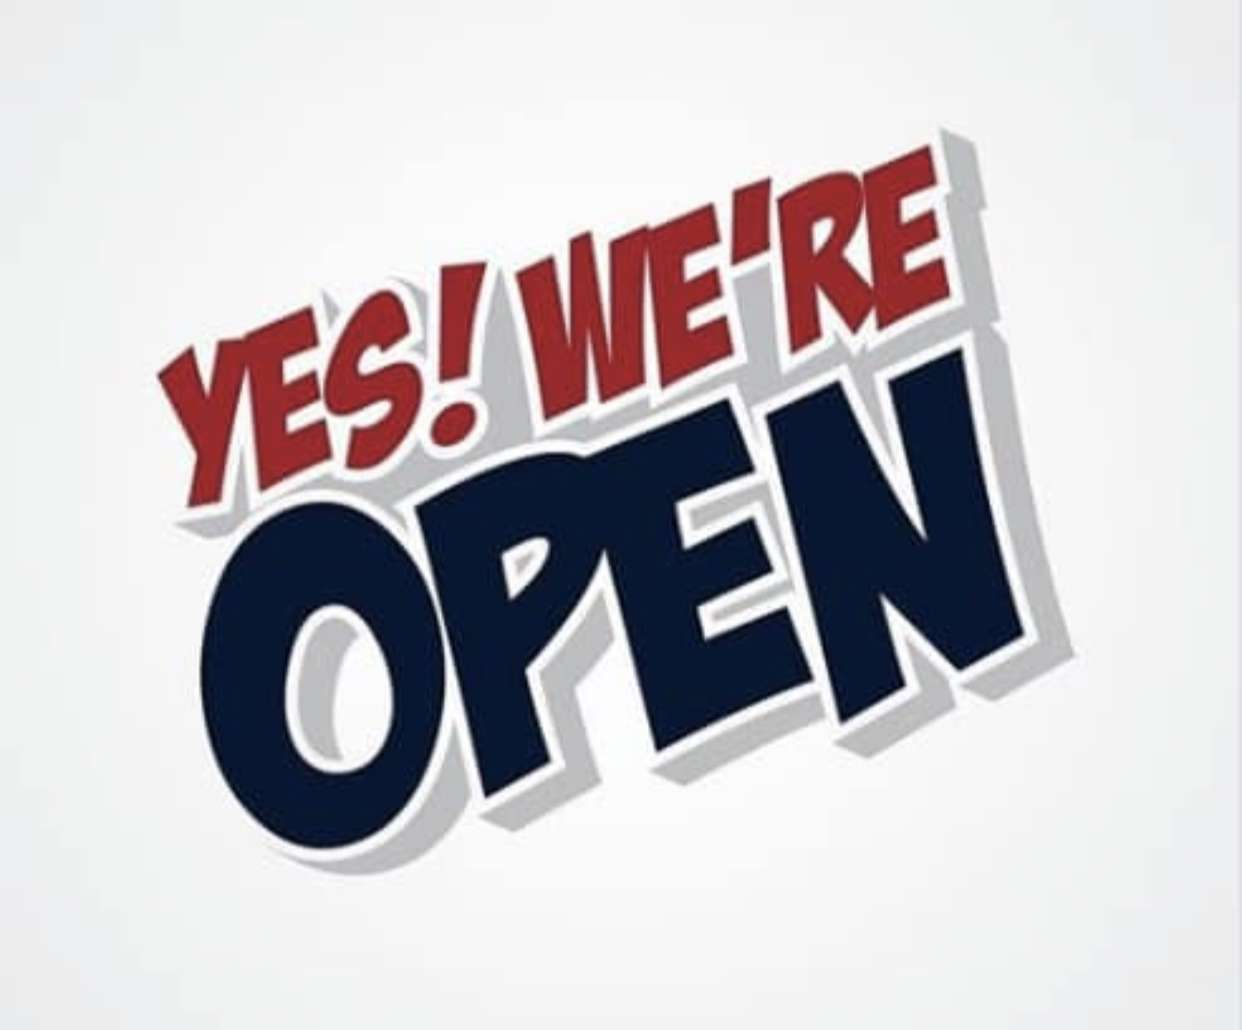 Yes we're open !!